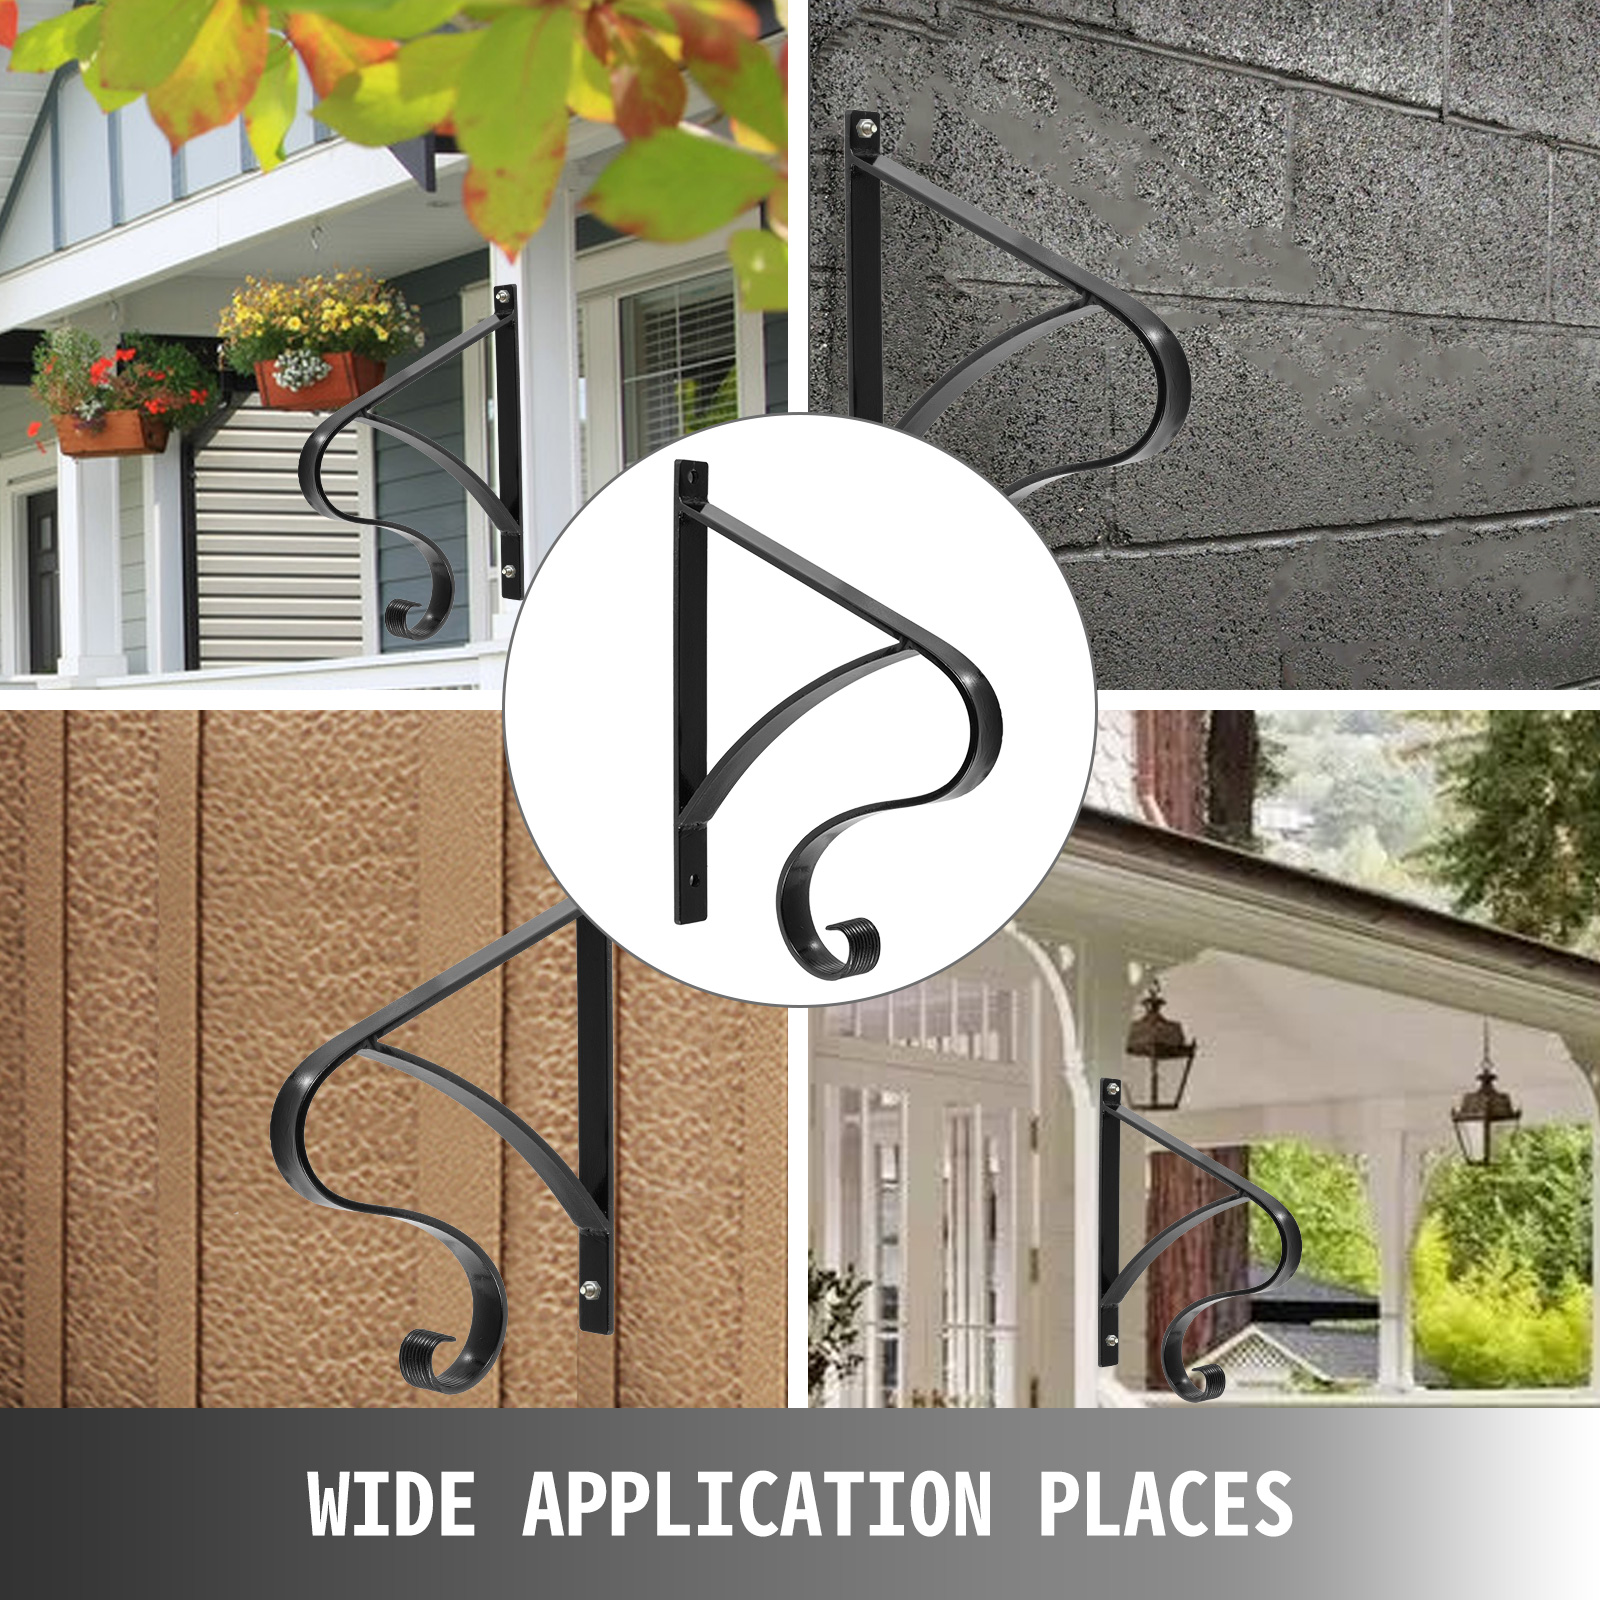 Handrails-for-Outdoor-Step-Wrought-Iron-Handrail-20-034-Length-Porch-Deck-Railing thumbnail 103